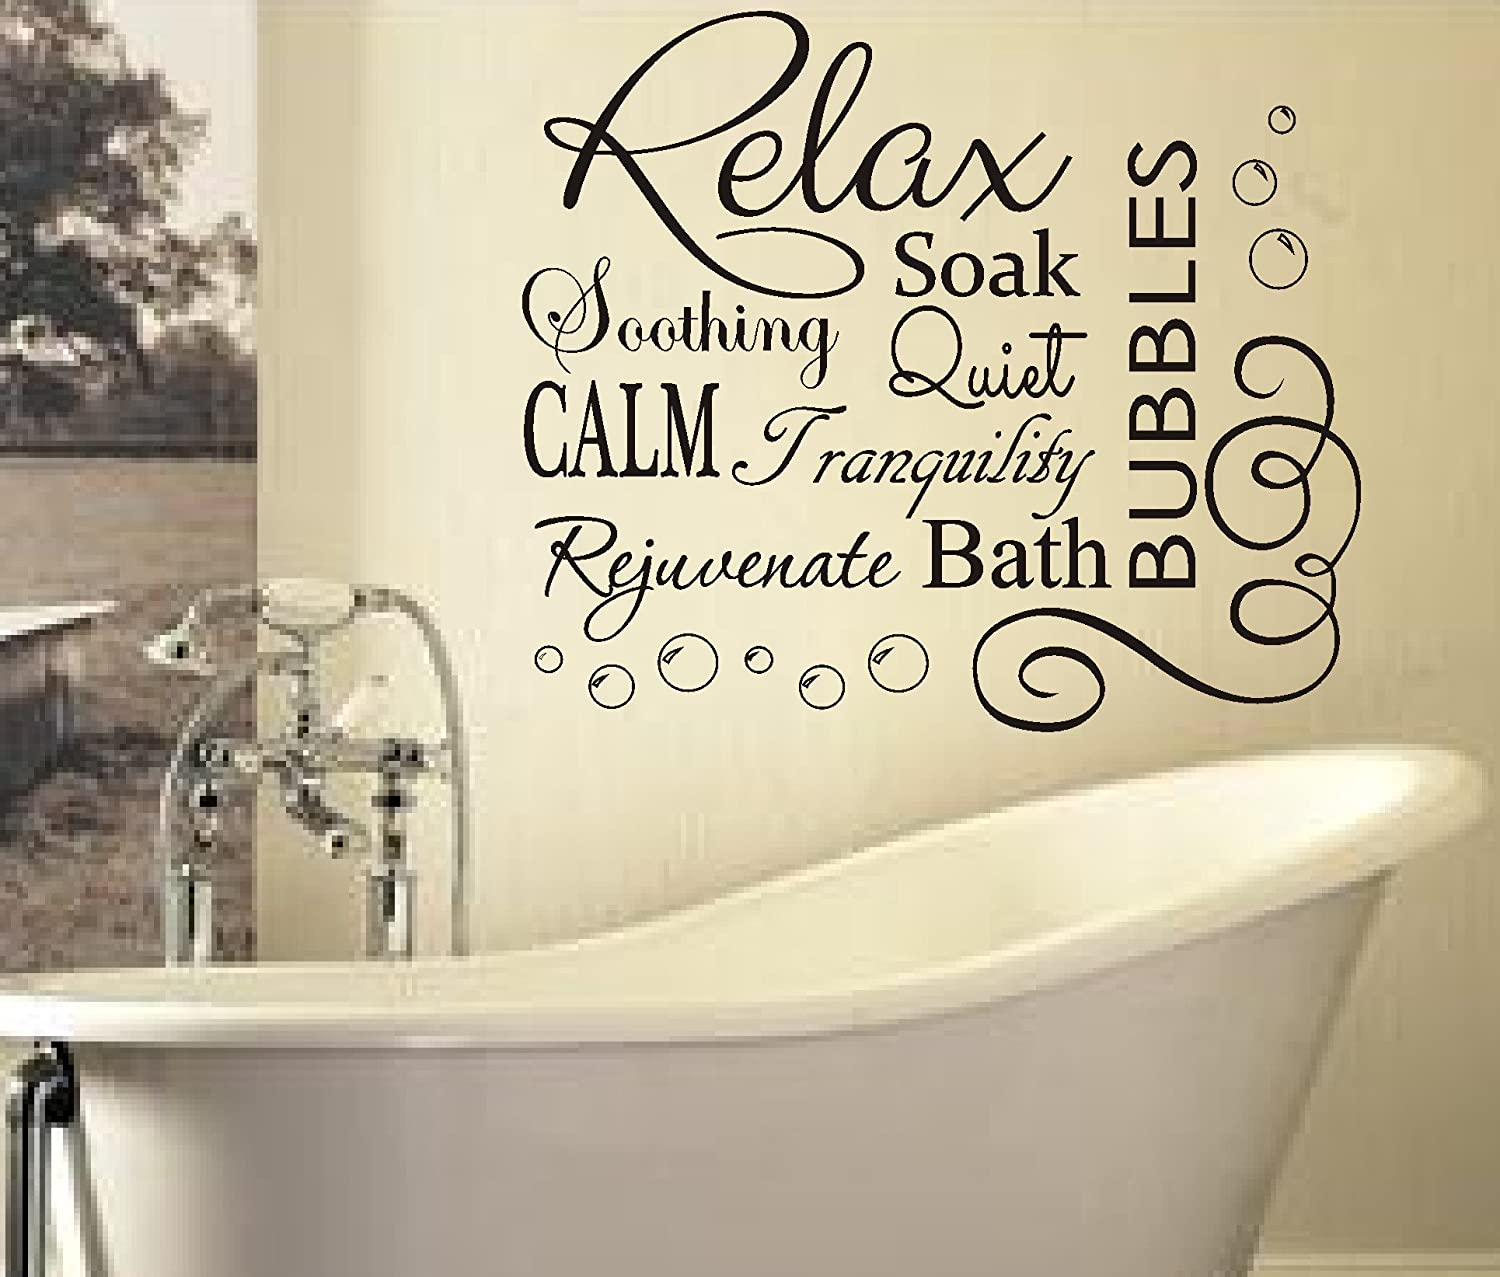 Bathroom wall art images galleries for Spa bathroom wall decor